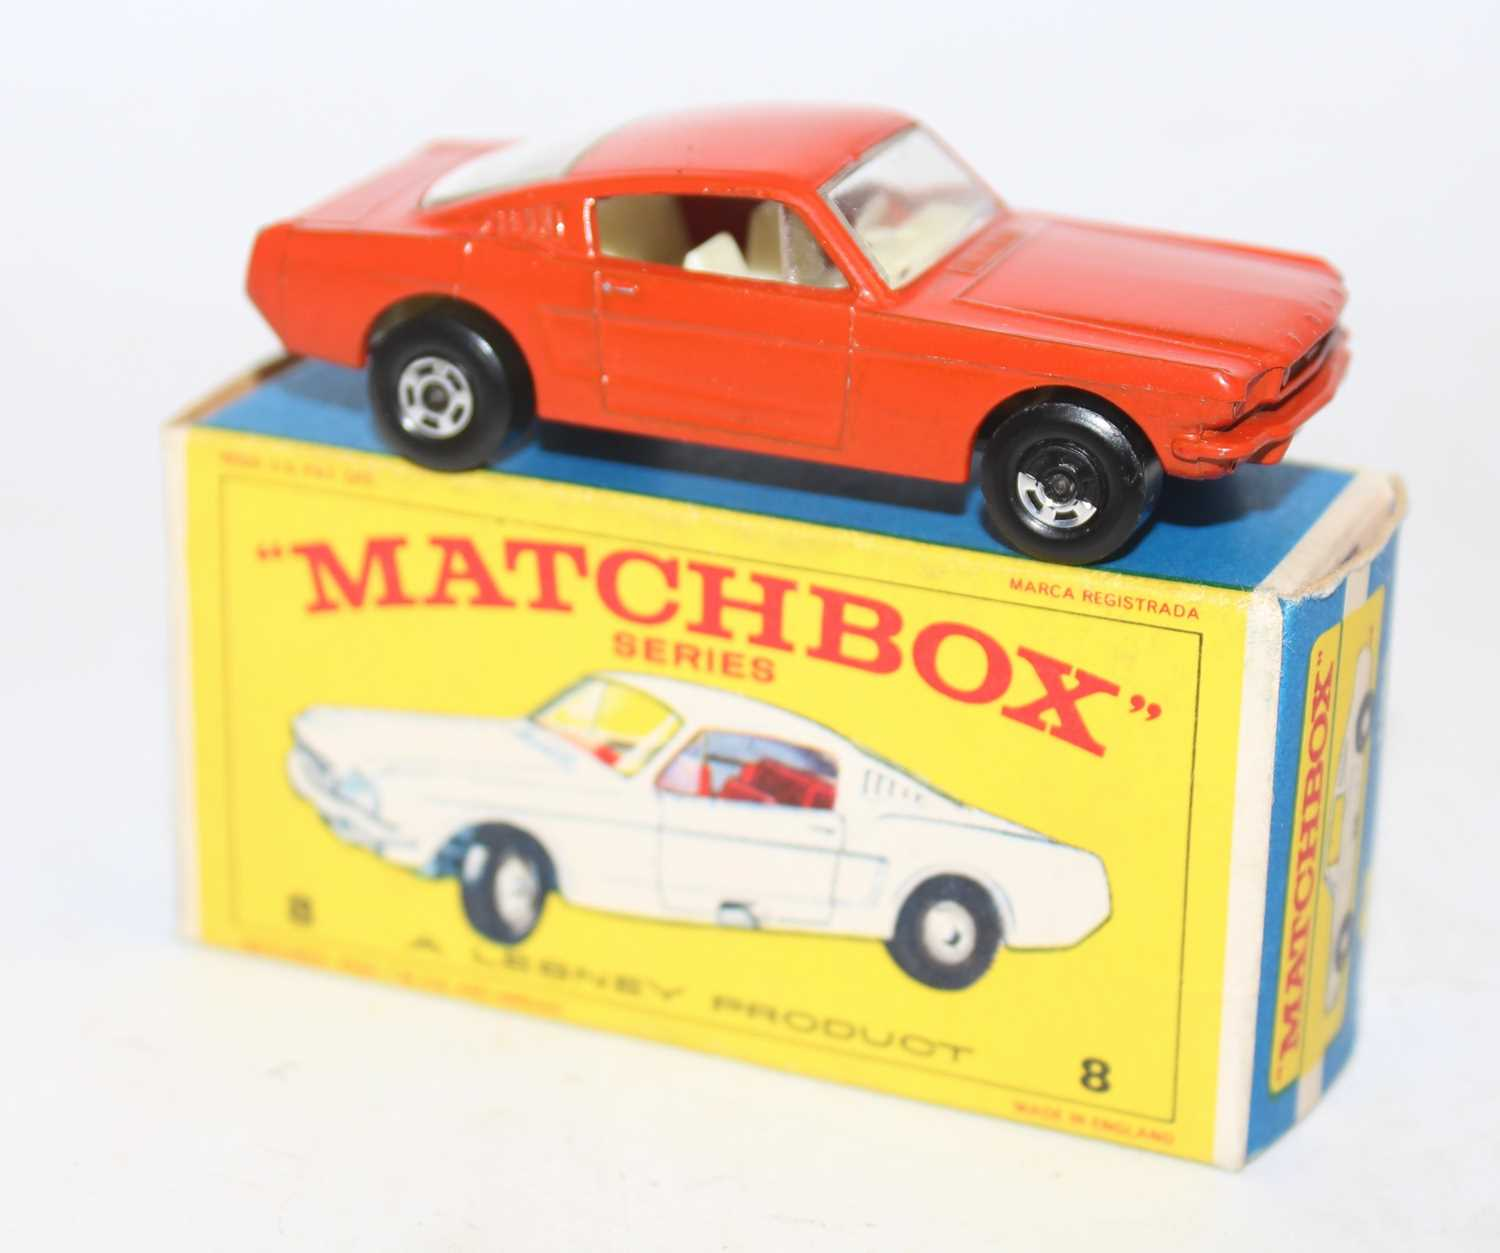 Matchbox No.8 Ford Mustang in orange-red with wide superfast wheels and white interior in a - Image 2 of 2